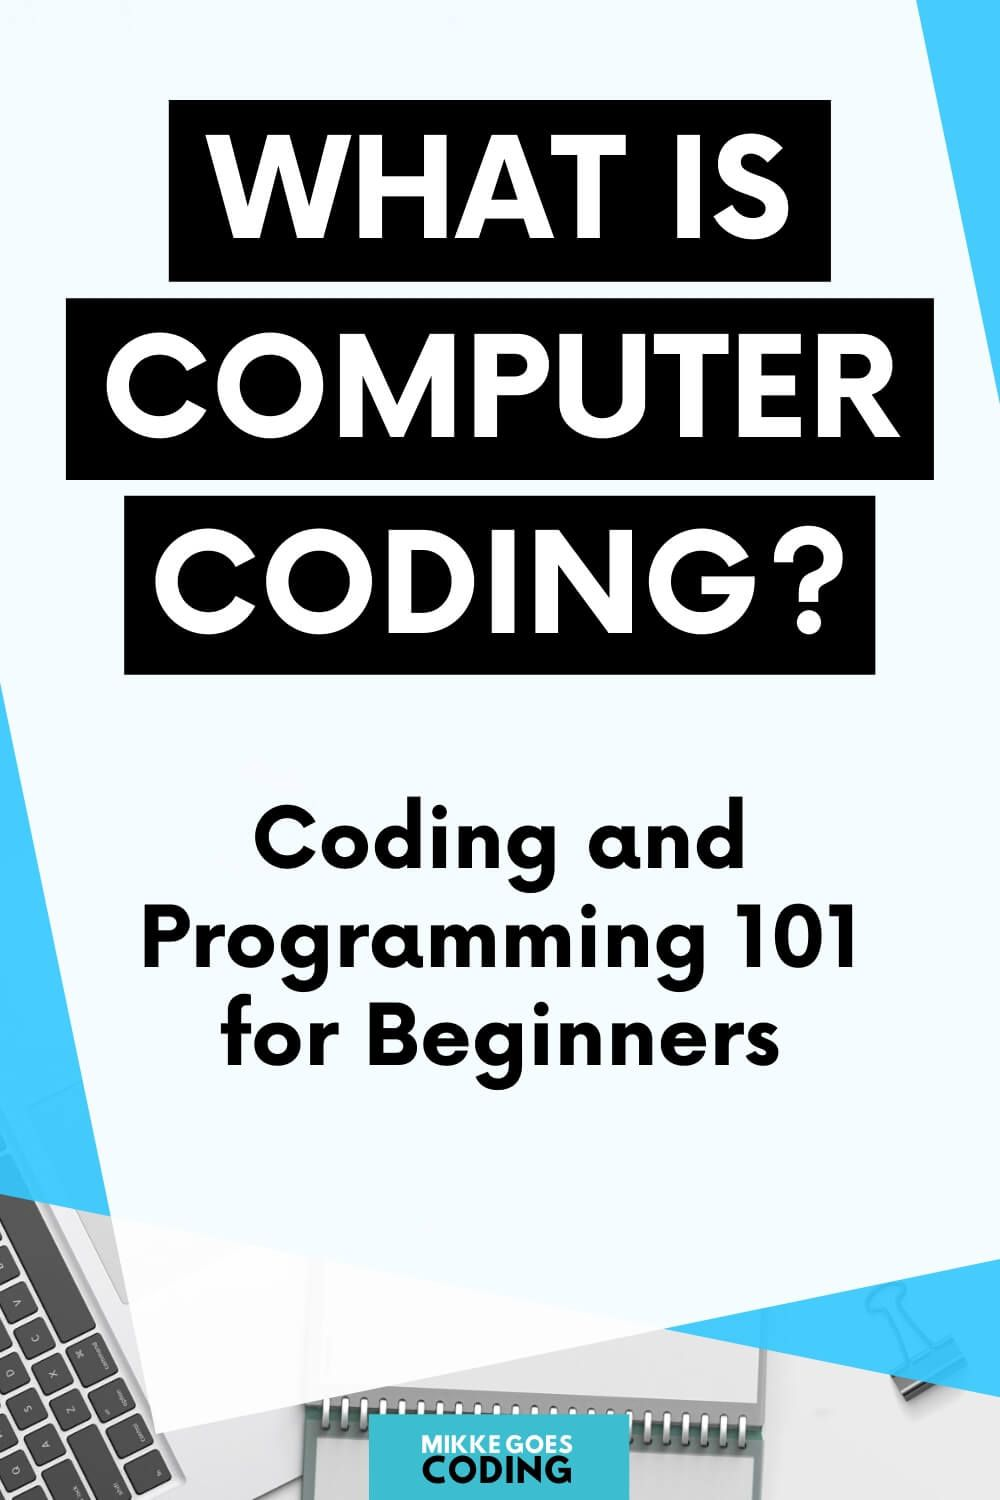 What Is Coding? Learn Programming and Web Development for